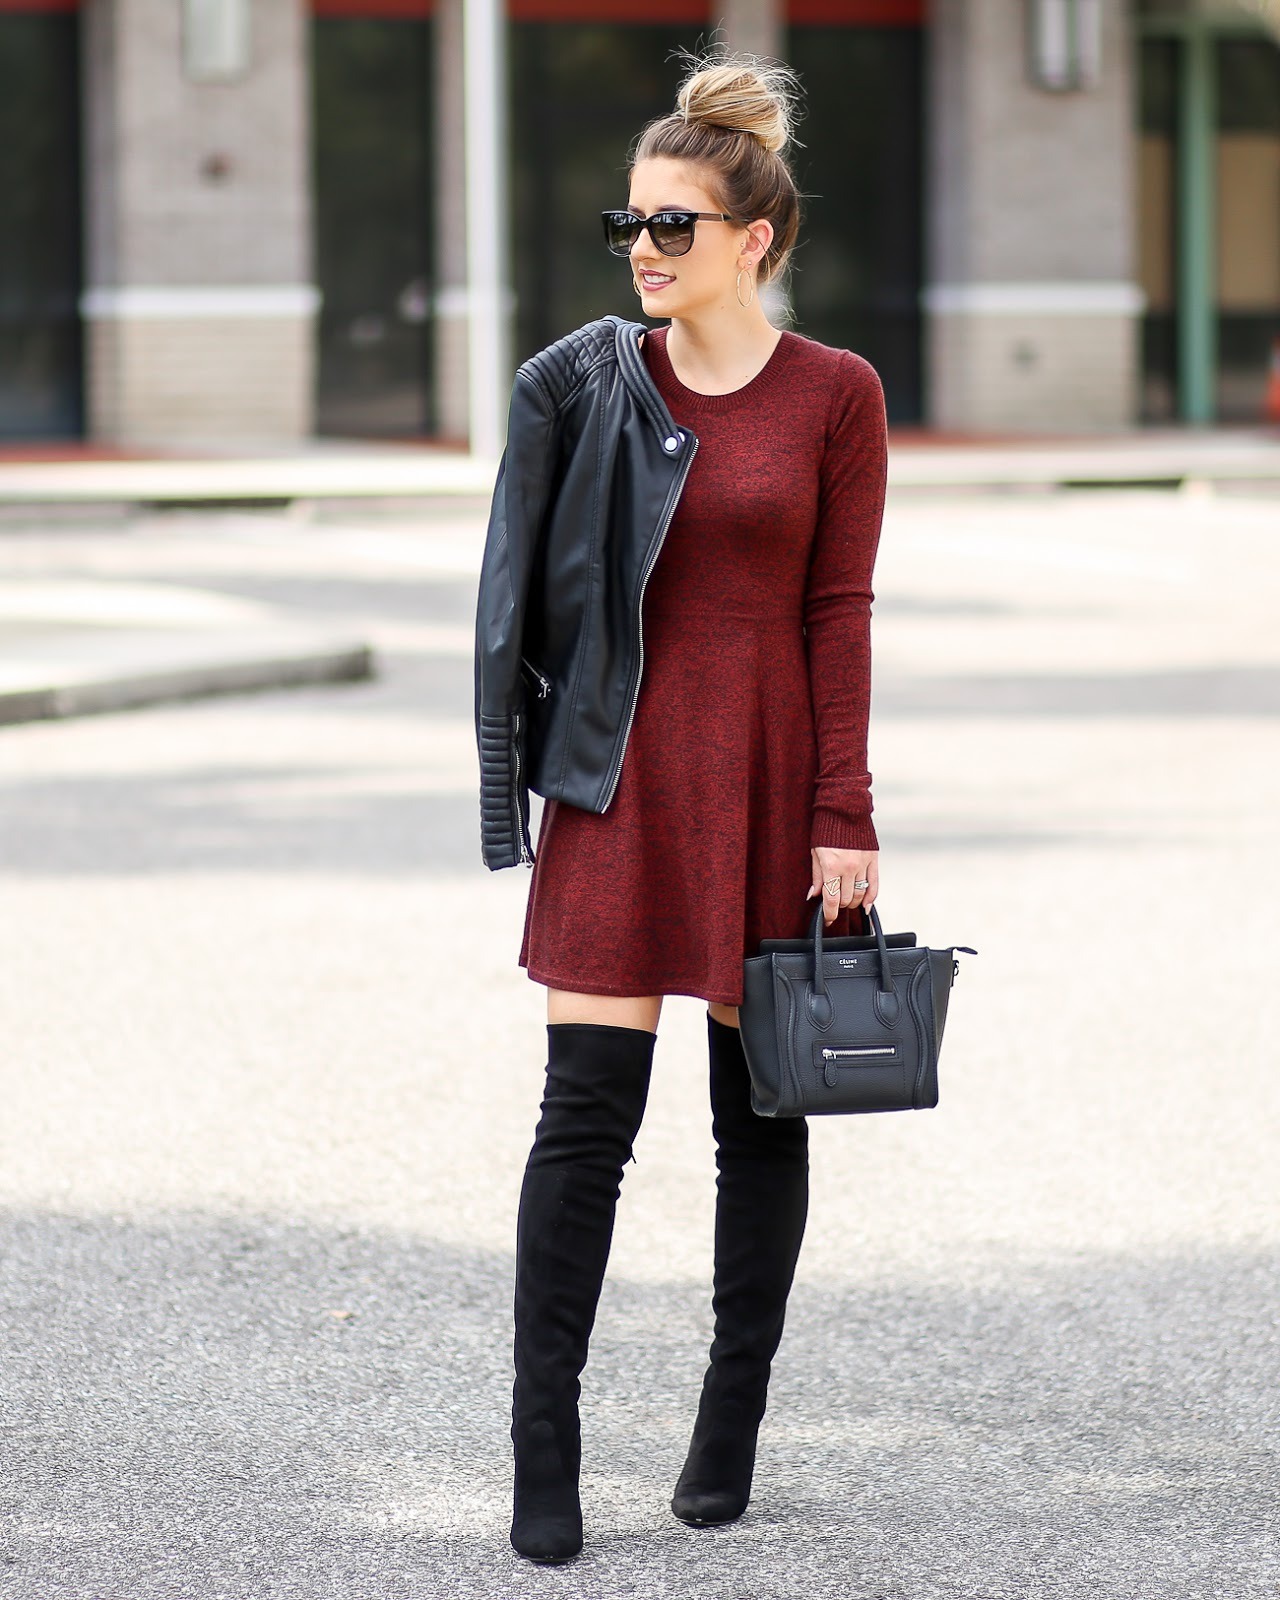 Express sweater dress black